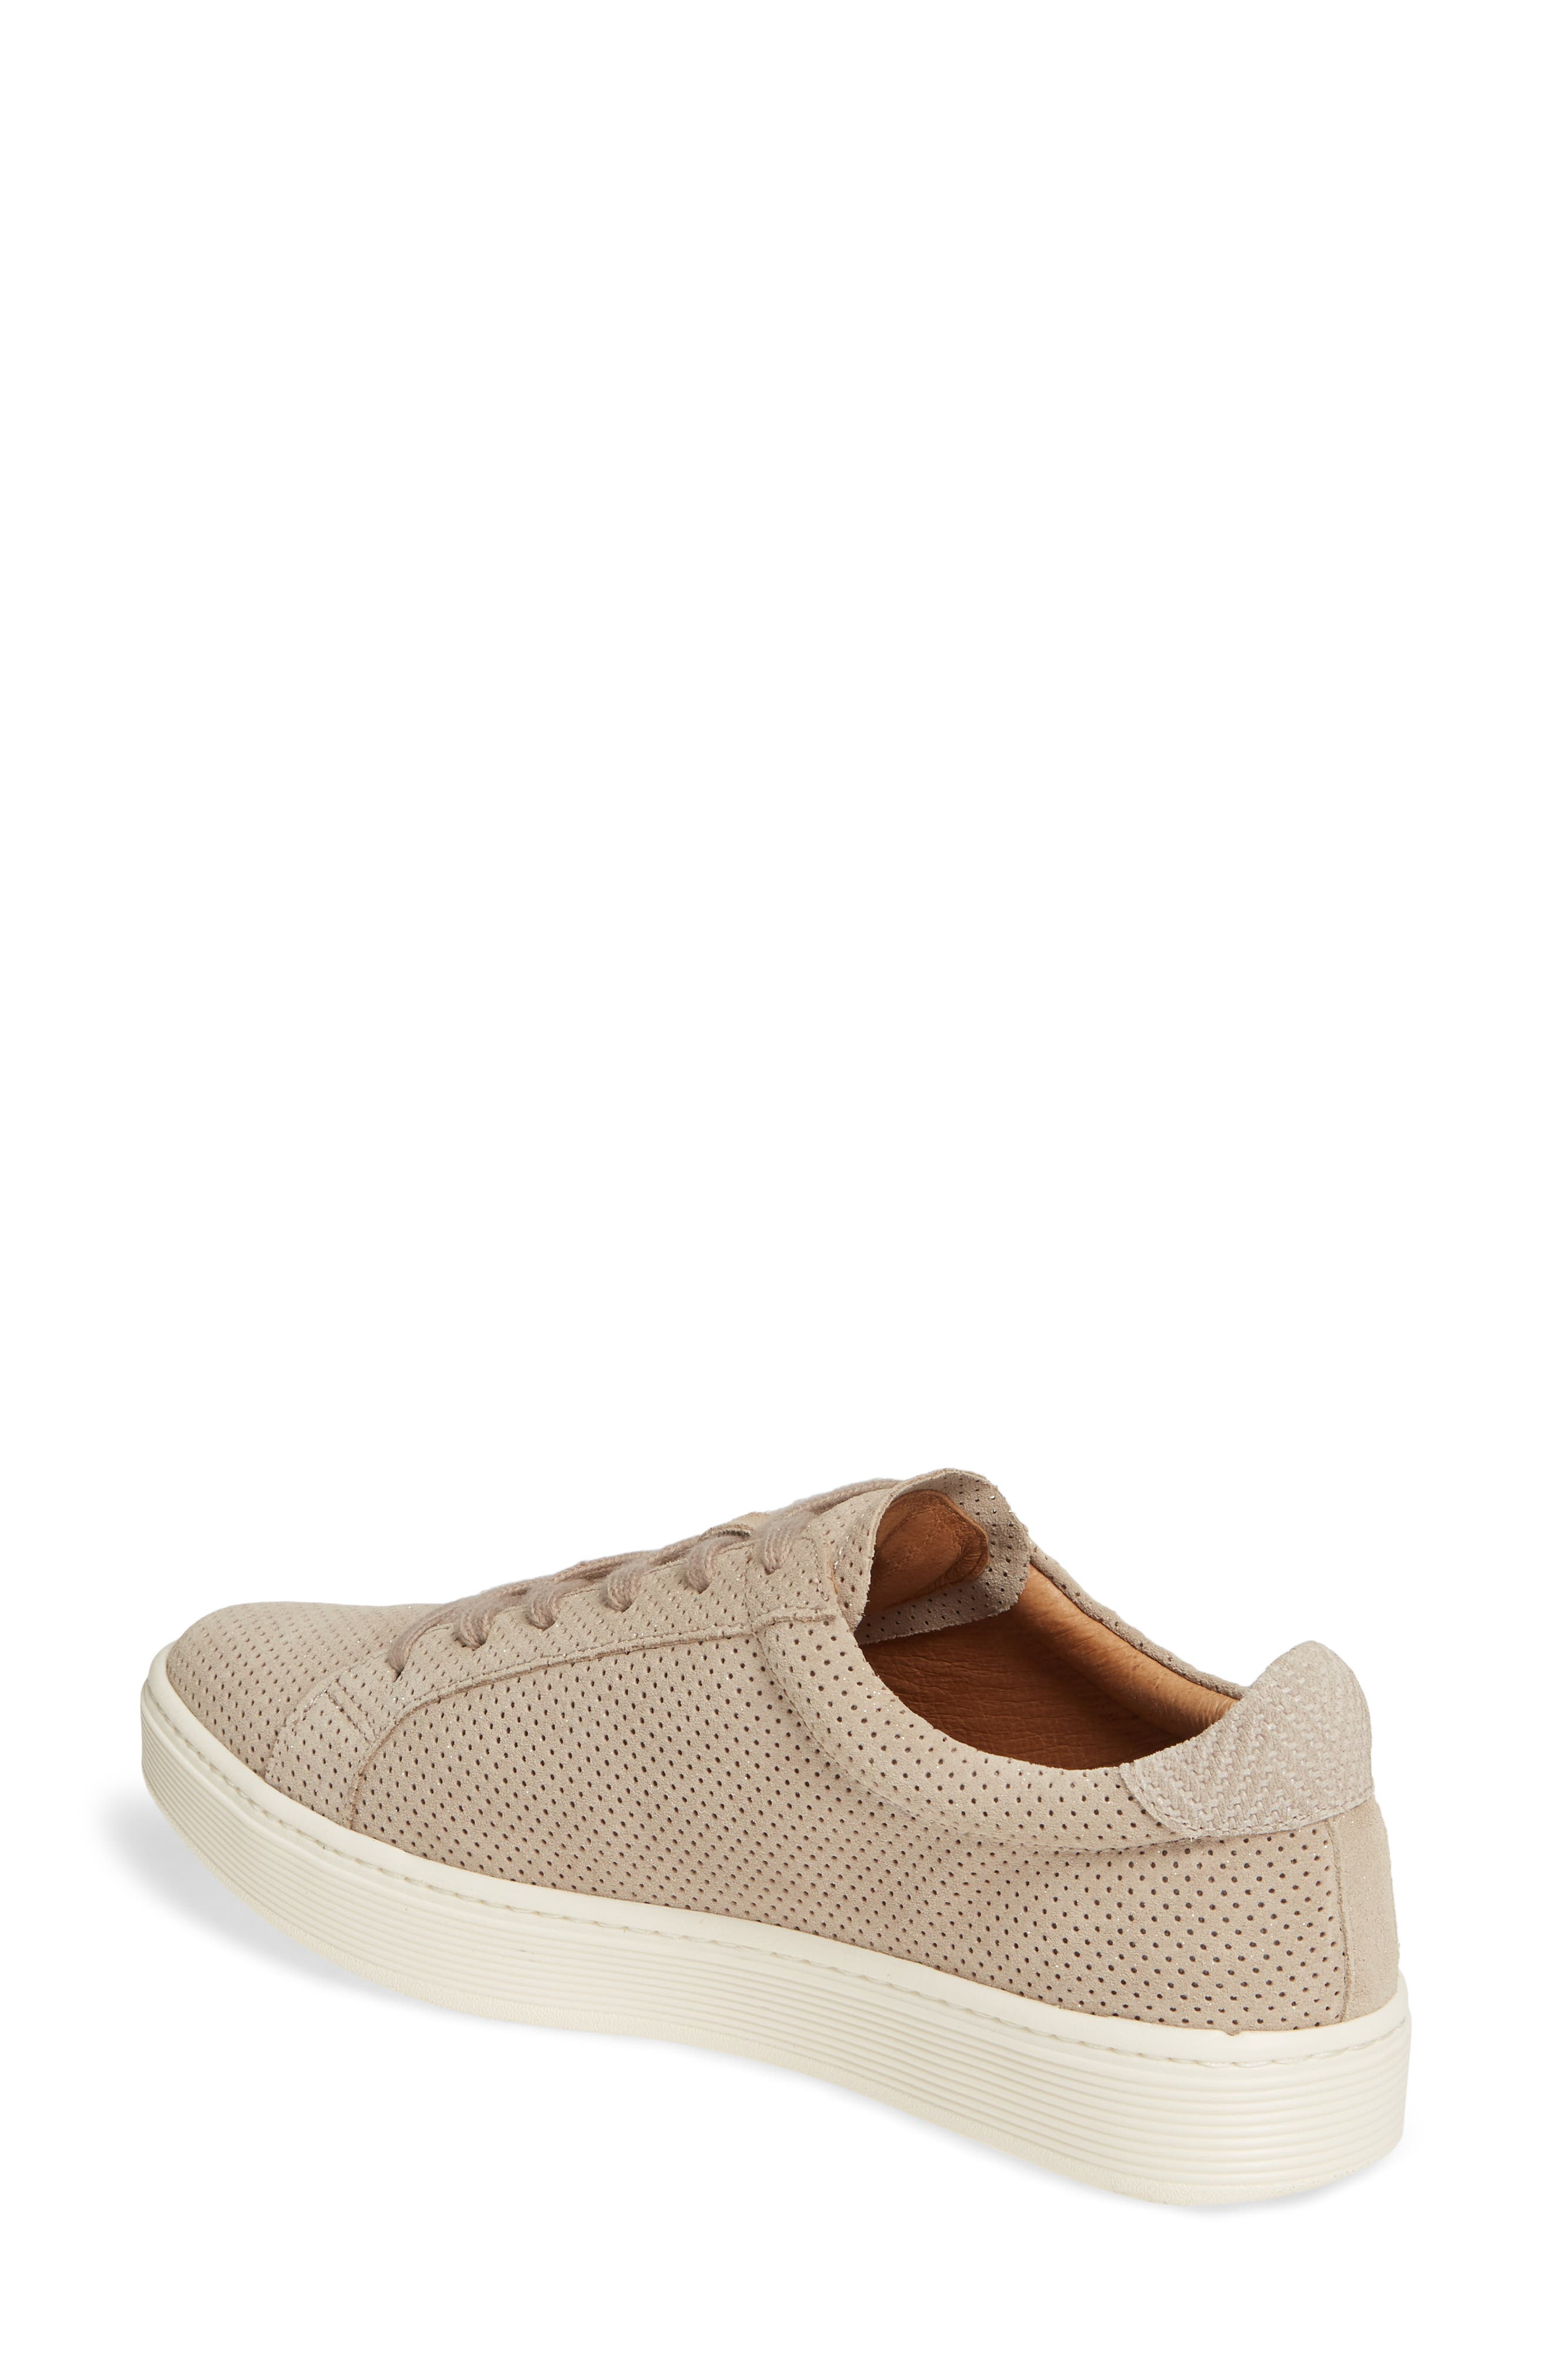 SÖFFT, Somers Perforated Sneaker, Alternate thumbnail 2, color, MOONSTONE GREY SUEDE